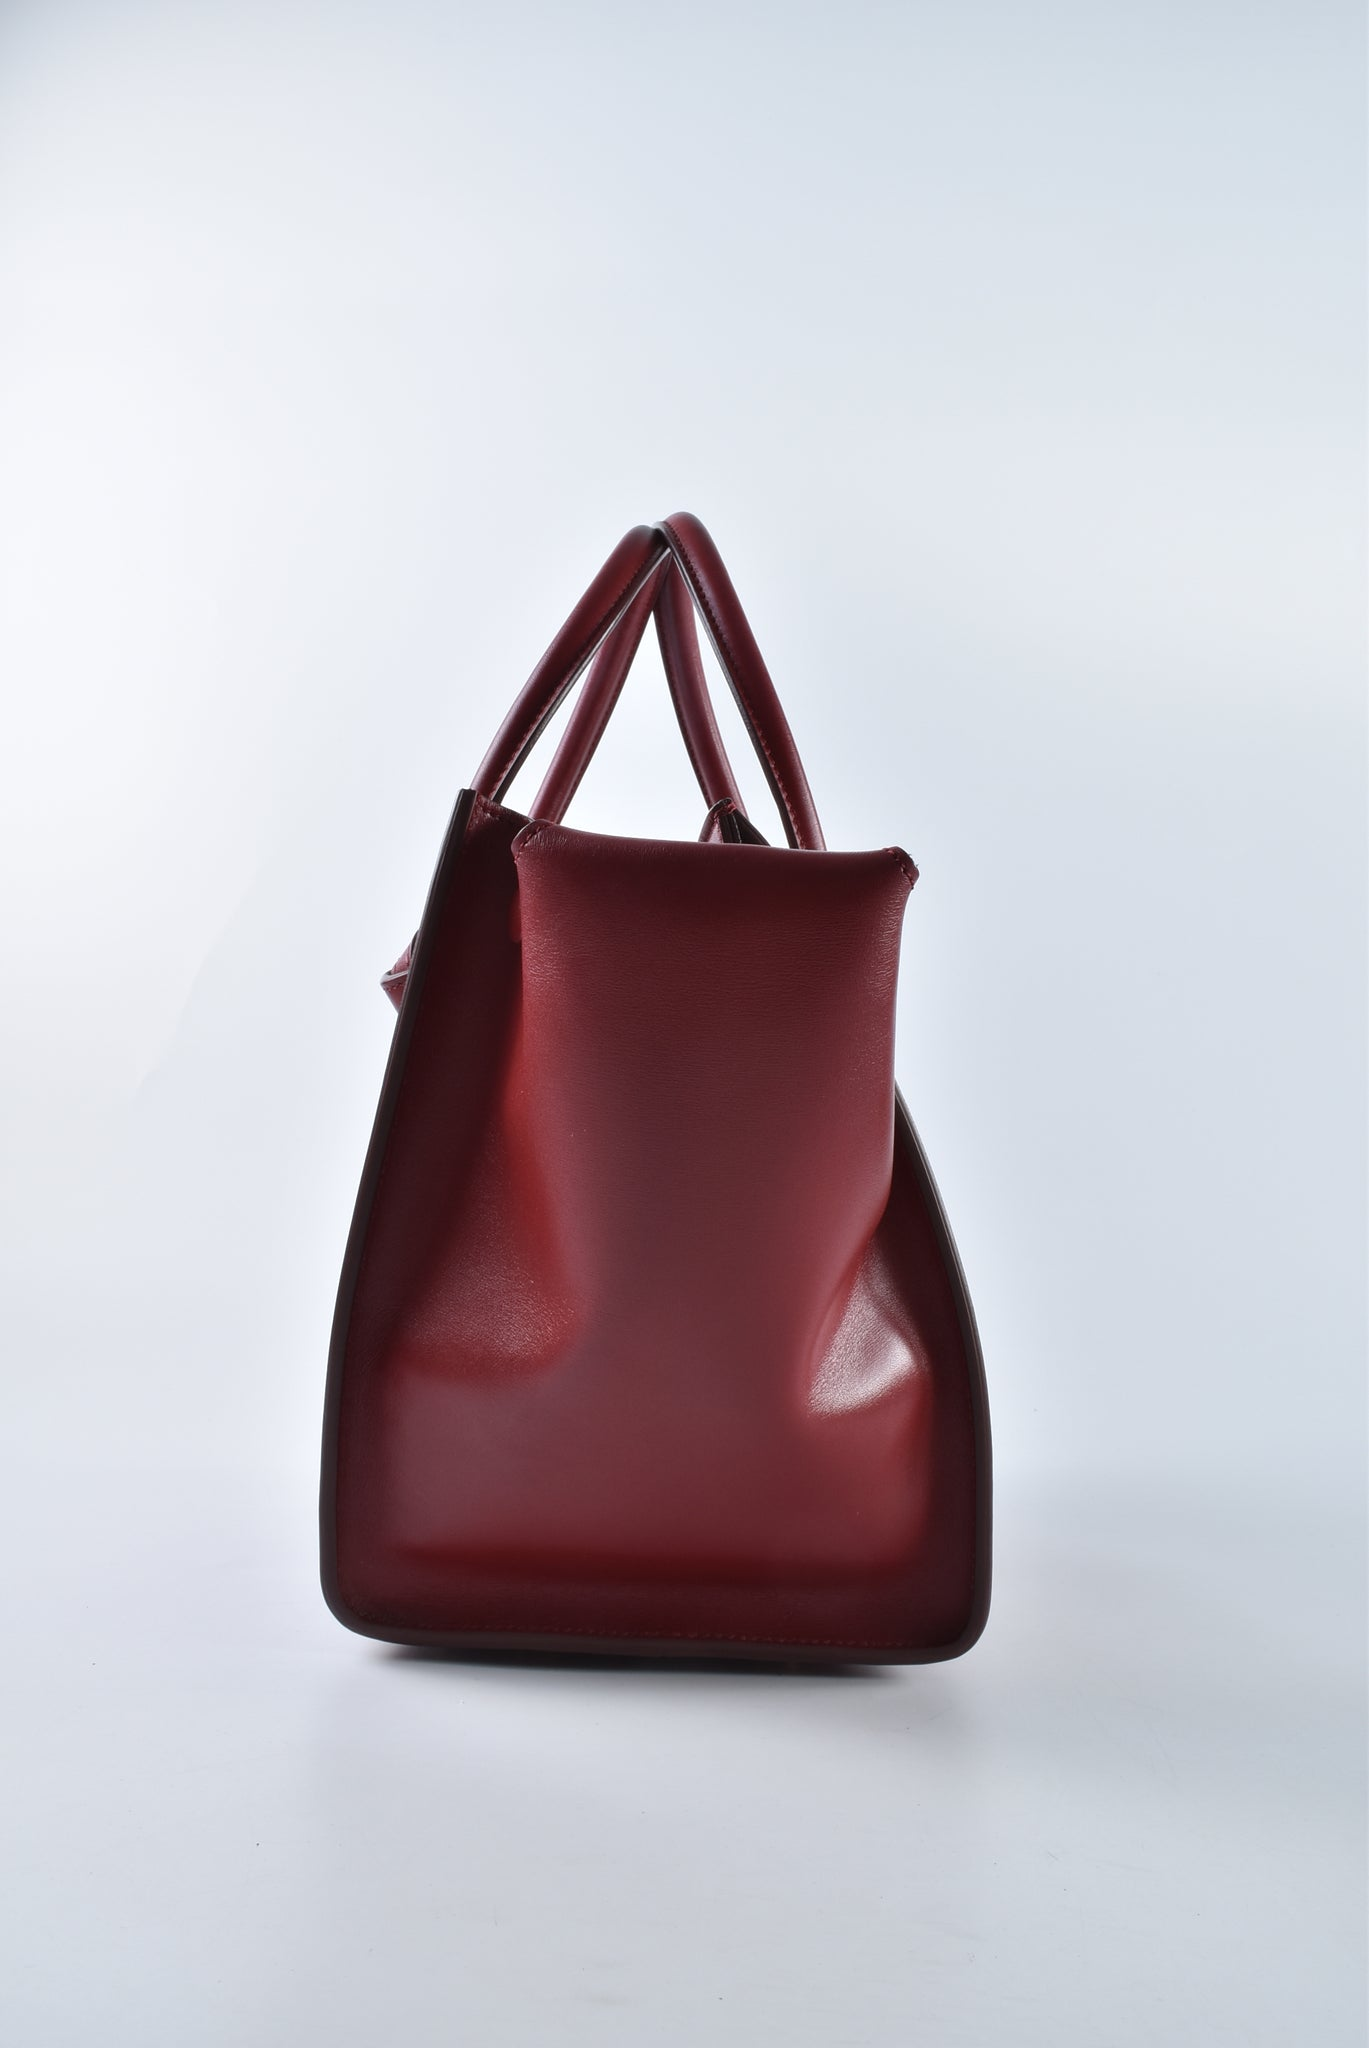 Celine Tie Knot Tote Palmelato Leather Burgundy Red Blue Suede W-GM-0174 - Glampot